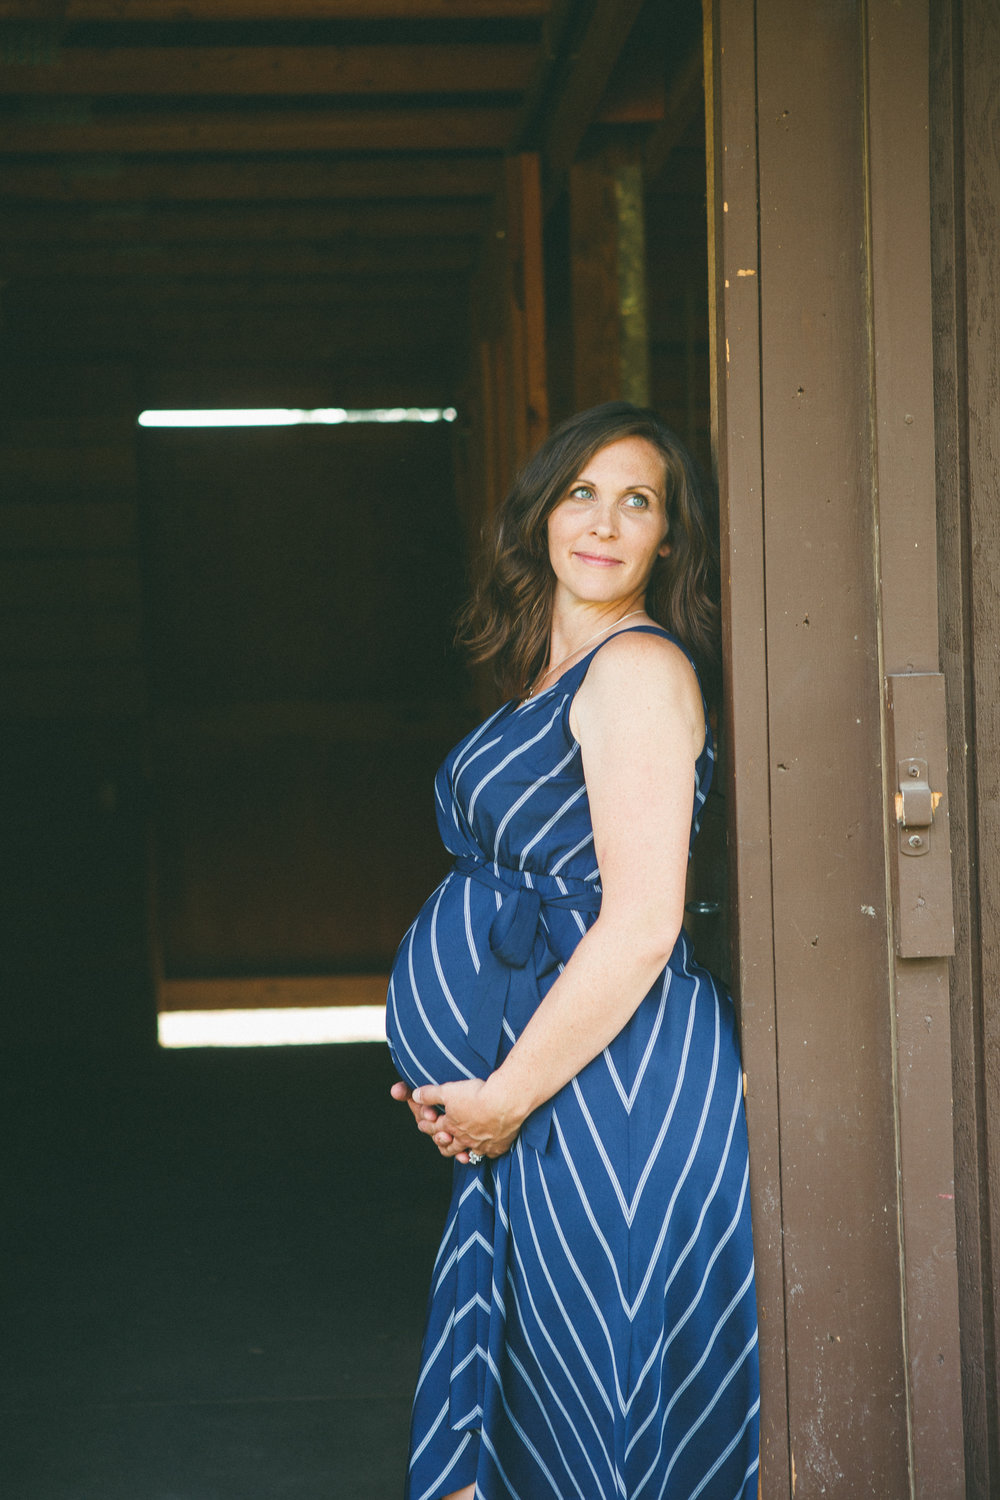 Rochester_NY_Maternity_Portrait_Photographer-2.jpg